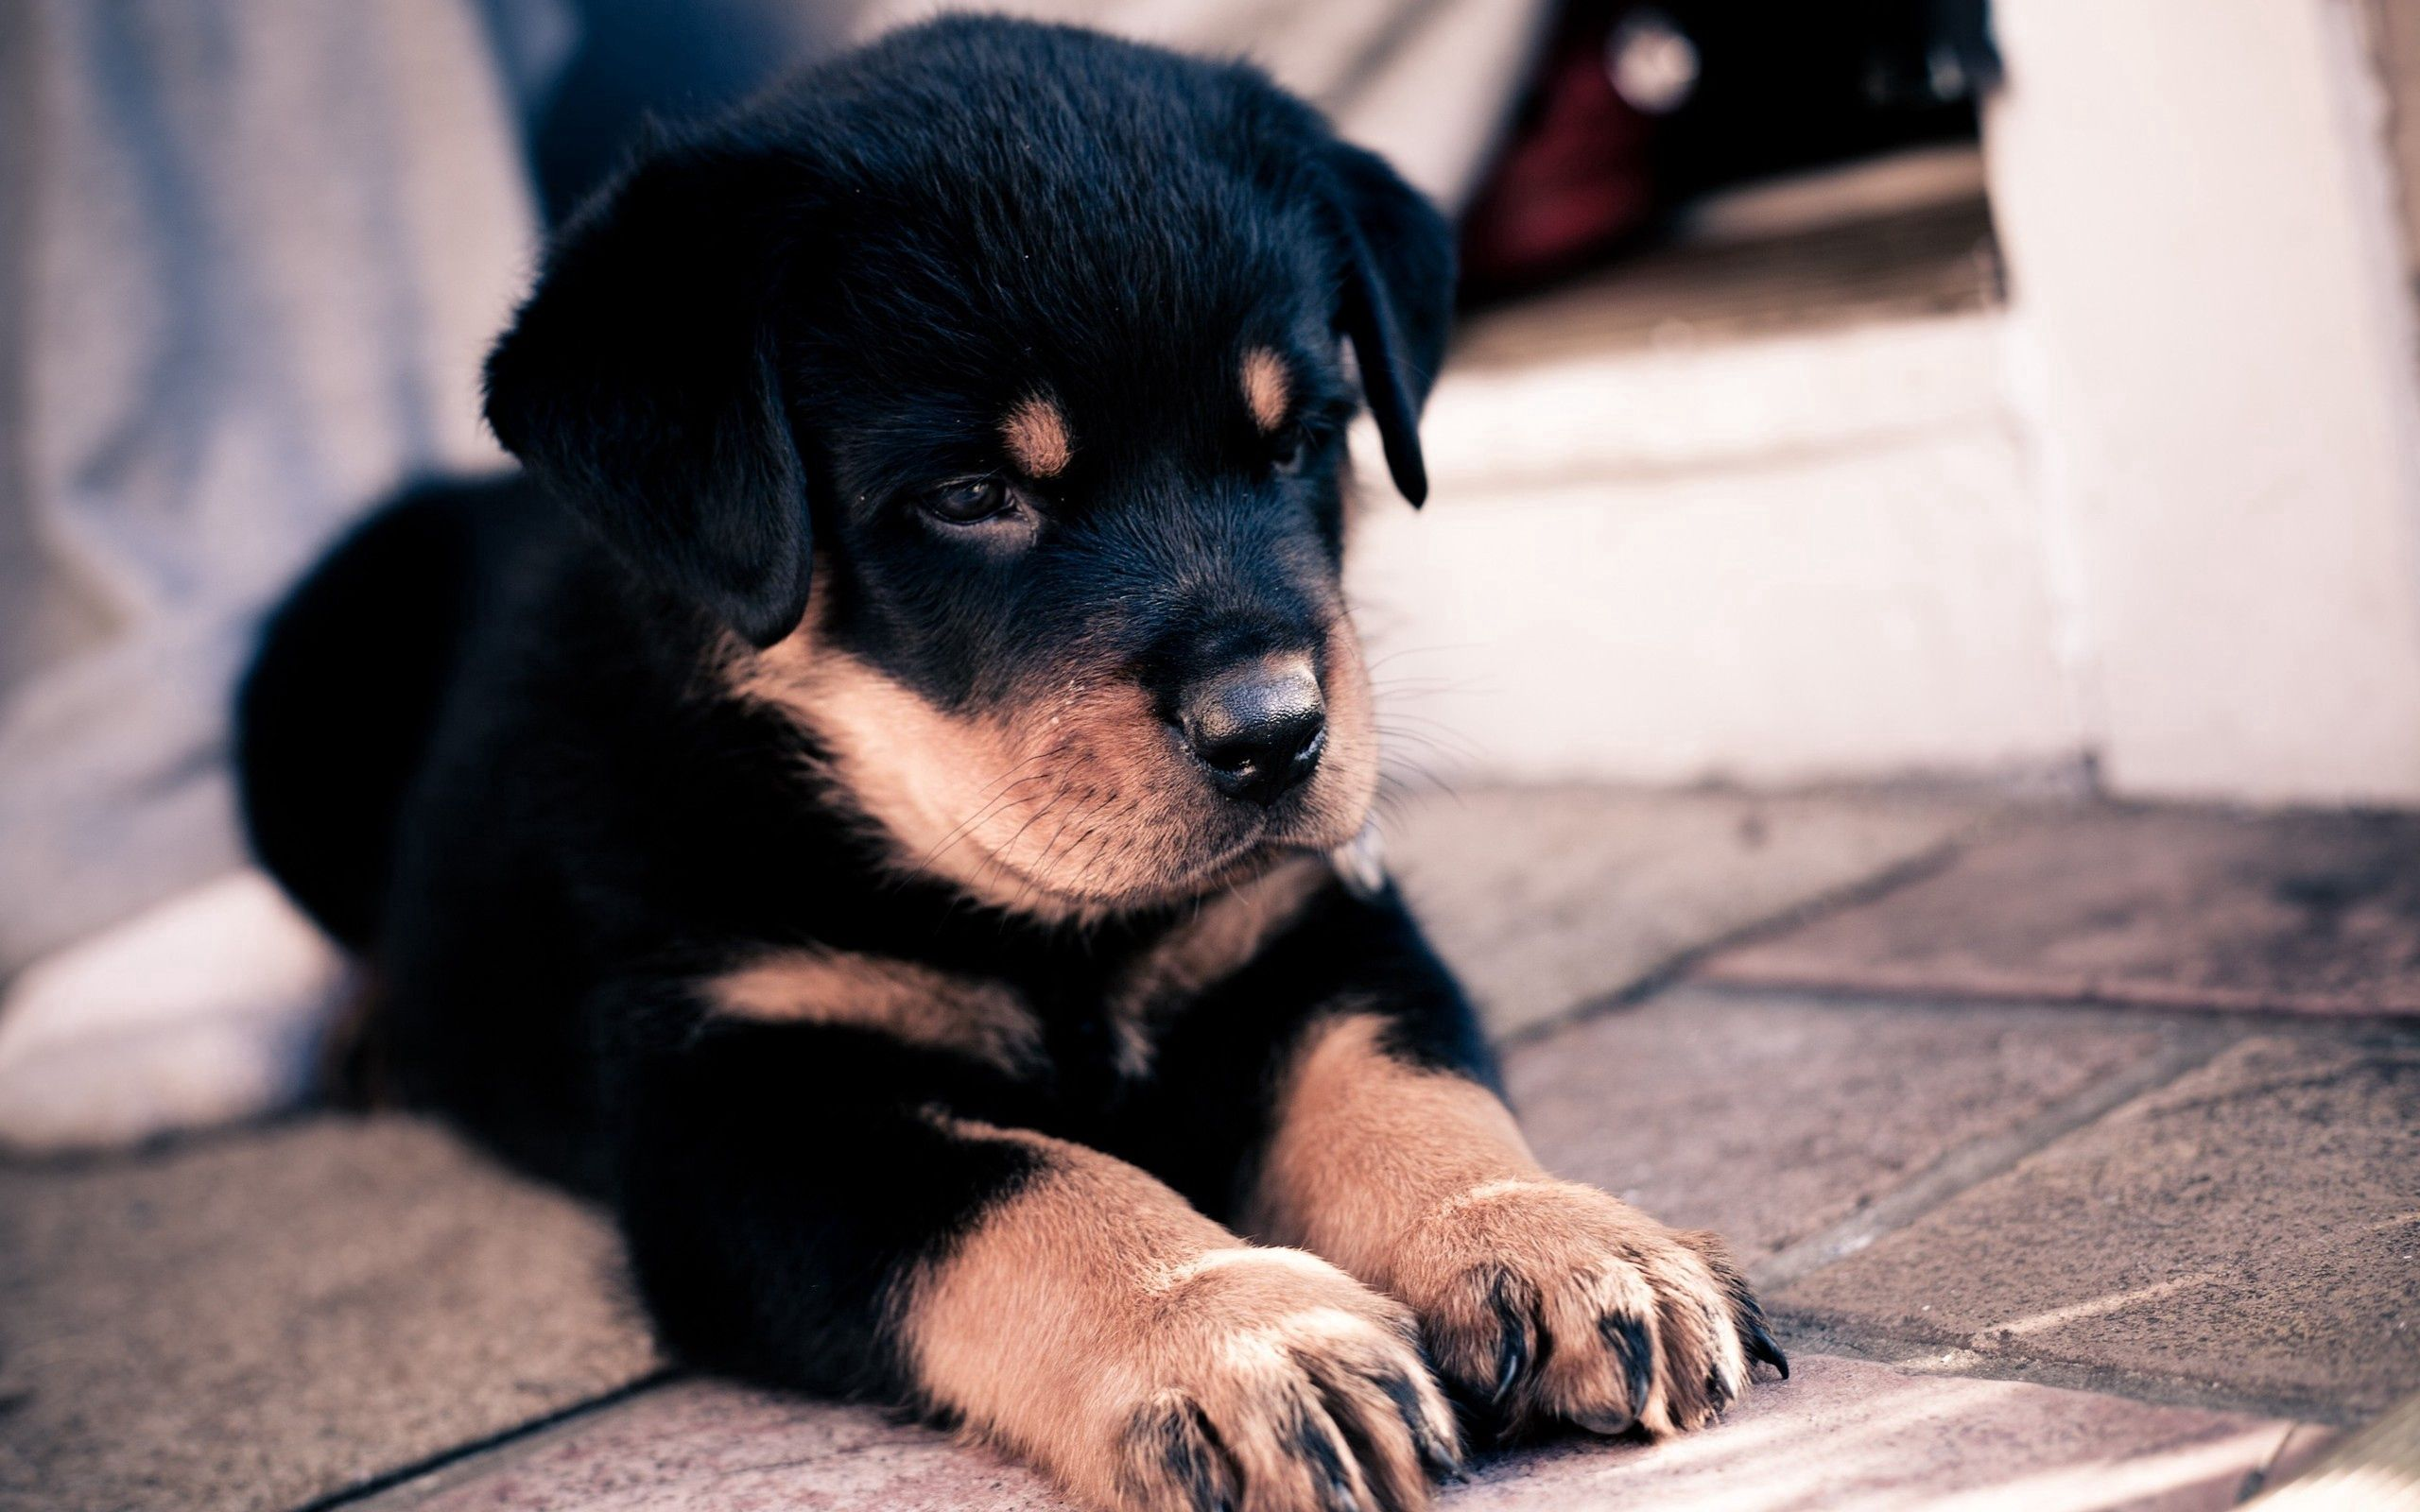 110126 download wallpaper Animals, Puppy, Rottweiler, To Lie Down, Lie, Nice, Sweetheart screensavers and pictures for free